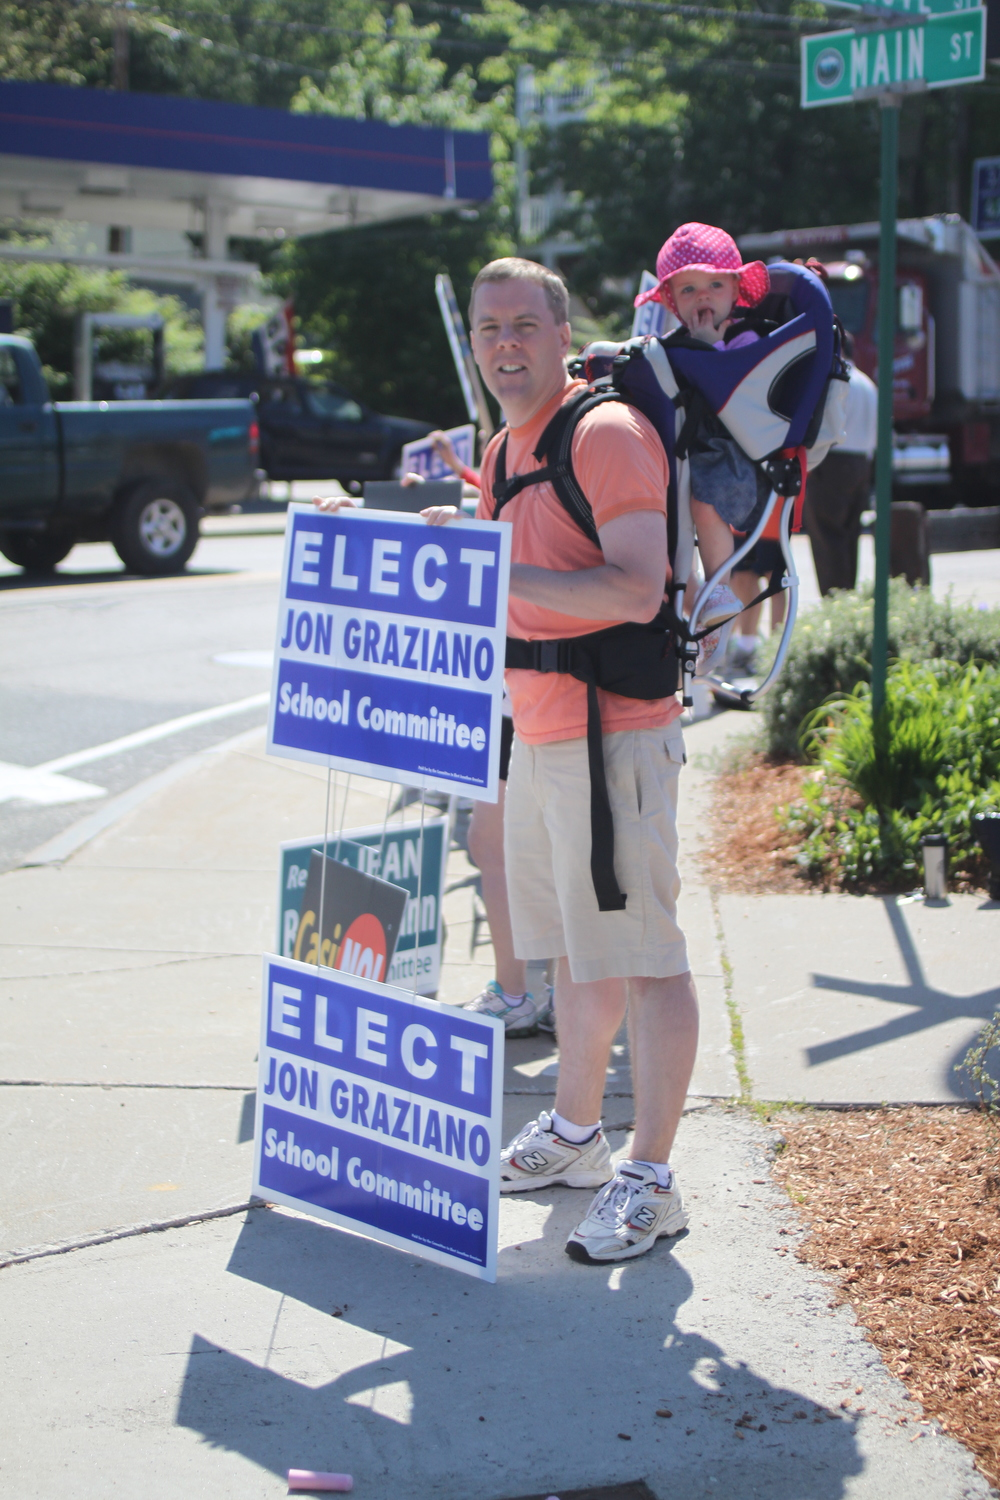 jon holding signs in 2012 for his school committee campaign.